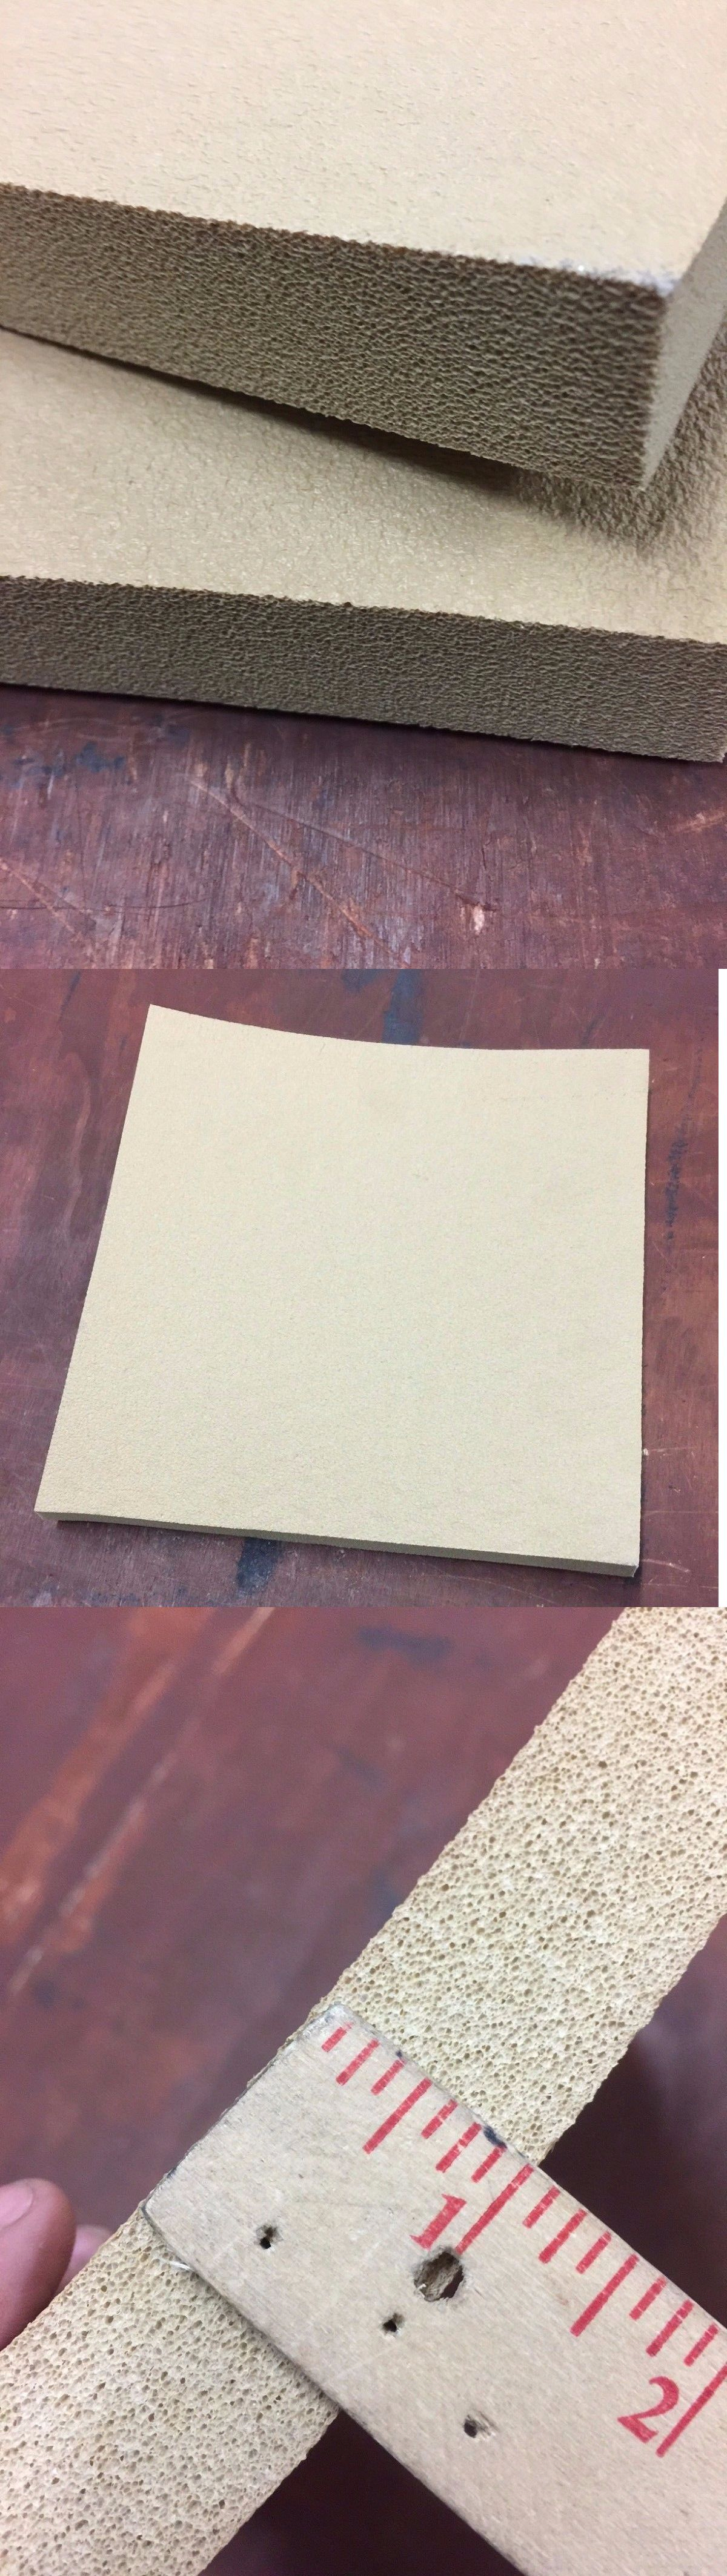 Styrofoam Forms 41200 Kydex Pressing Foam 12 X 12 X 1 25 Inch Tan 2 Pieces One Set Mold Pro Buy It Now Only 16 45 On Ebay With Images Kydex Foam Styrofoam